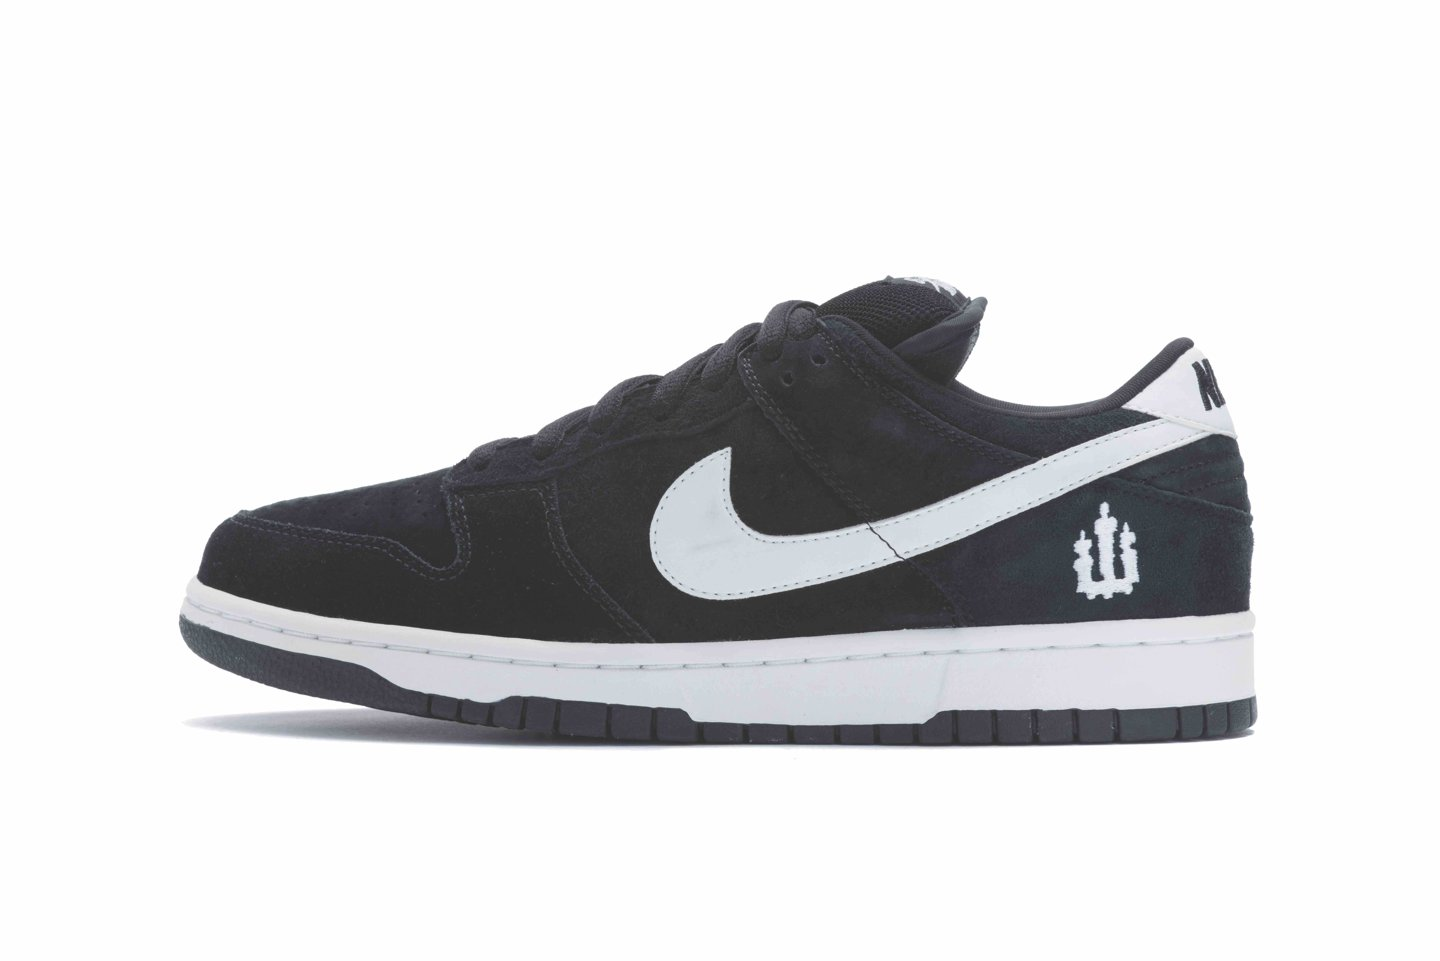 hot sale online 46894 3a235 Black Box - Nike Skateboarding